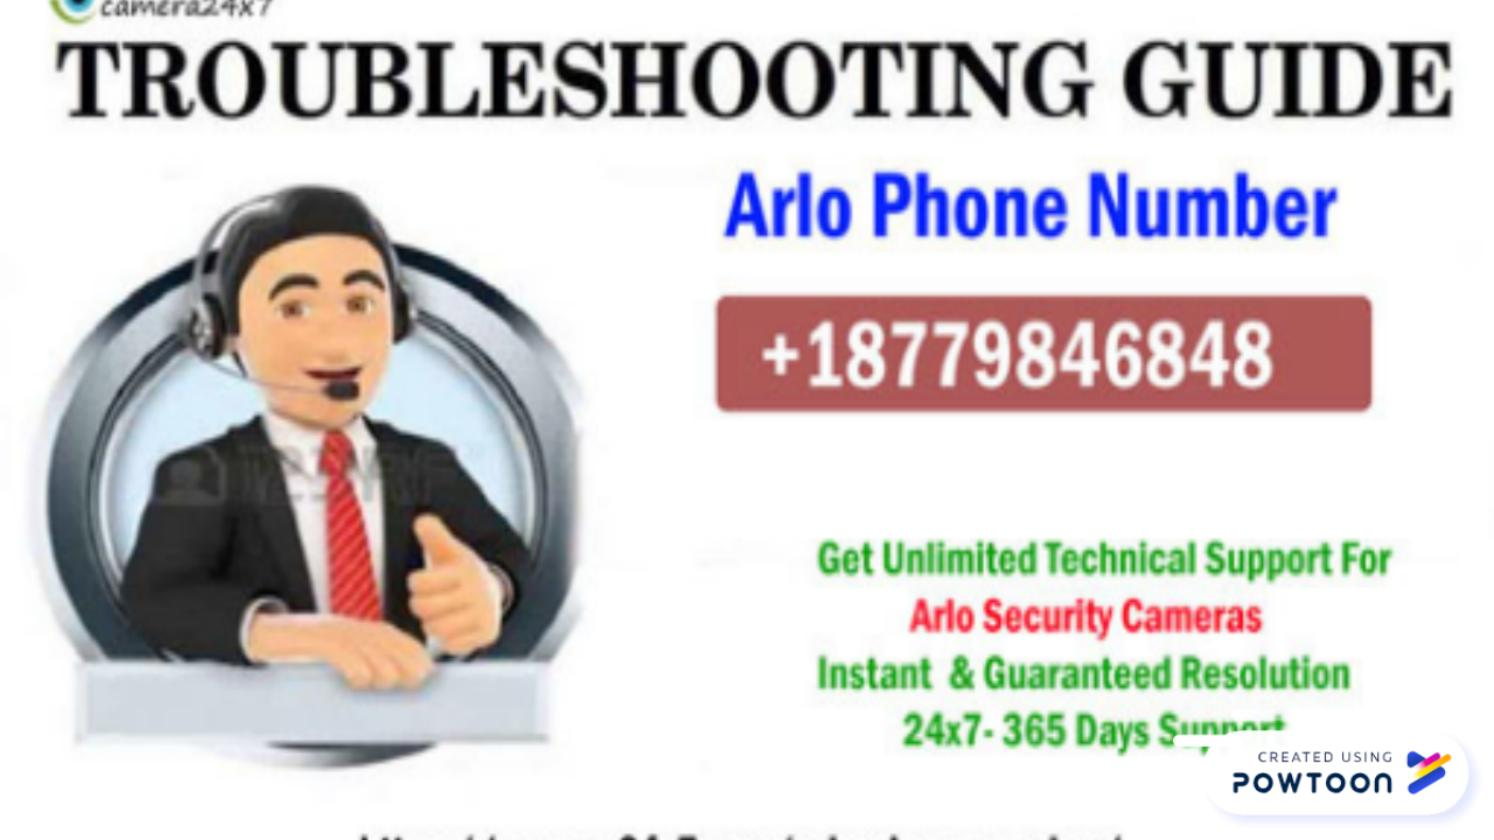 Dial +1-877-984-6848 Arlo Support Number to Know Arlo Camera is Weatherproof or Not